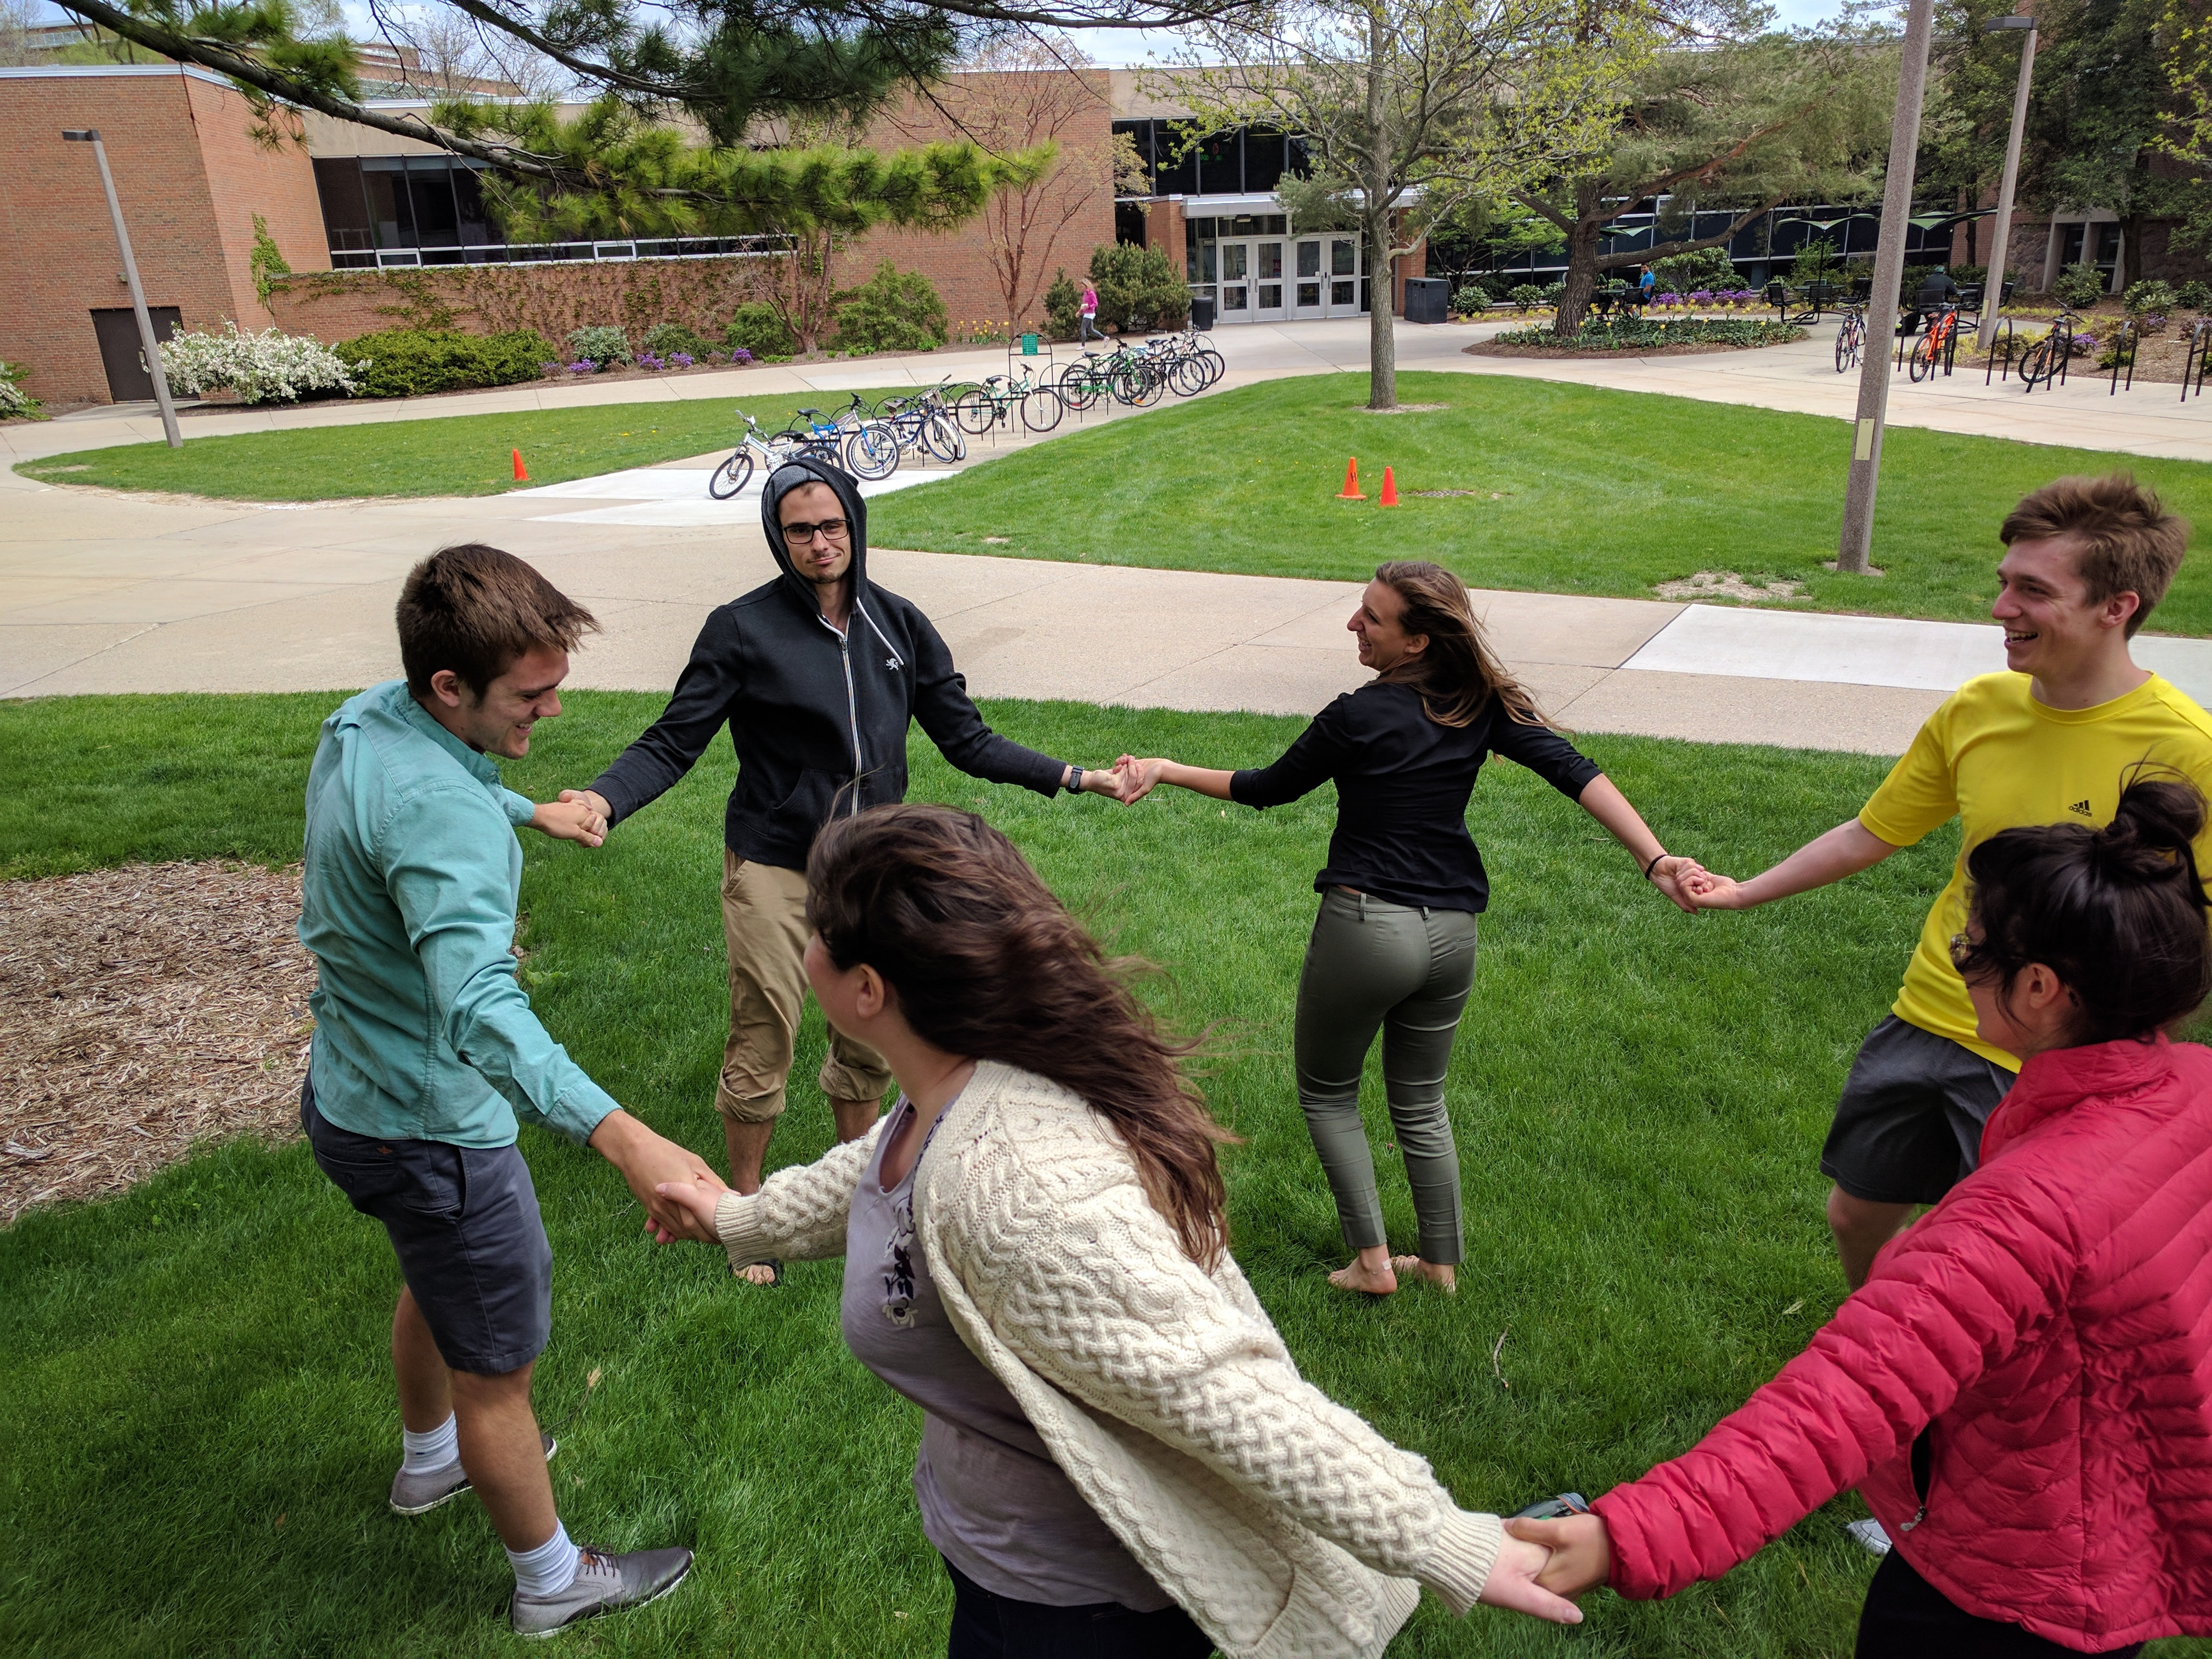 A group of six students hold hands in a circle outside in the grass.